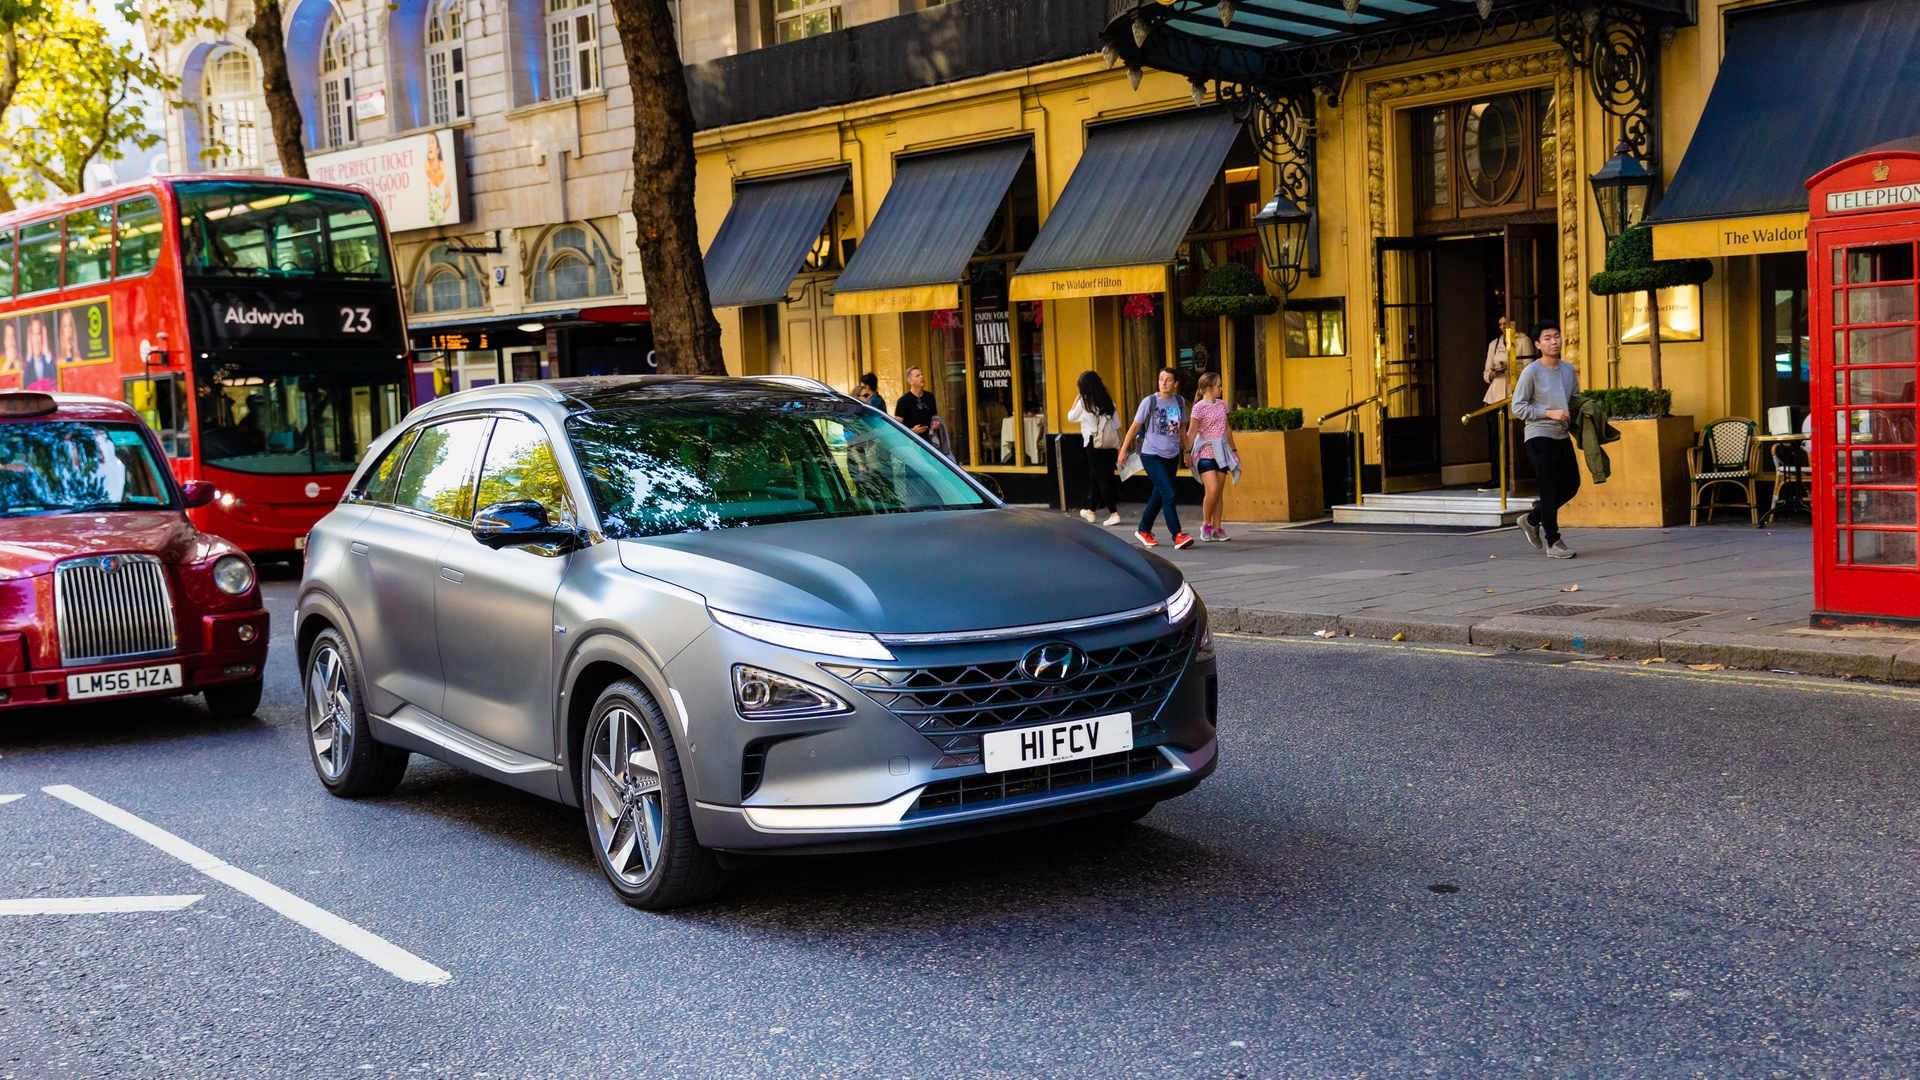 Hyundai_Nexo_London_0028